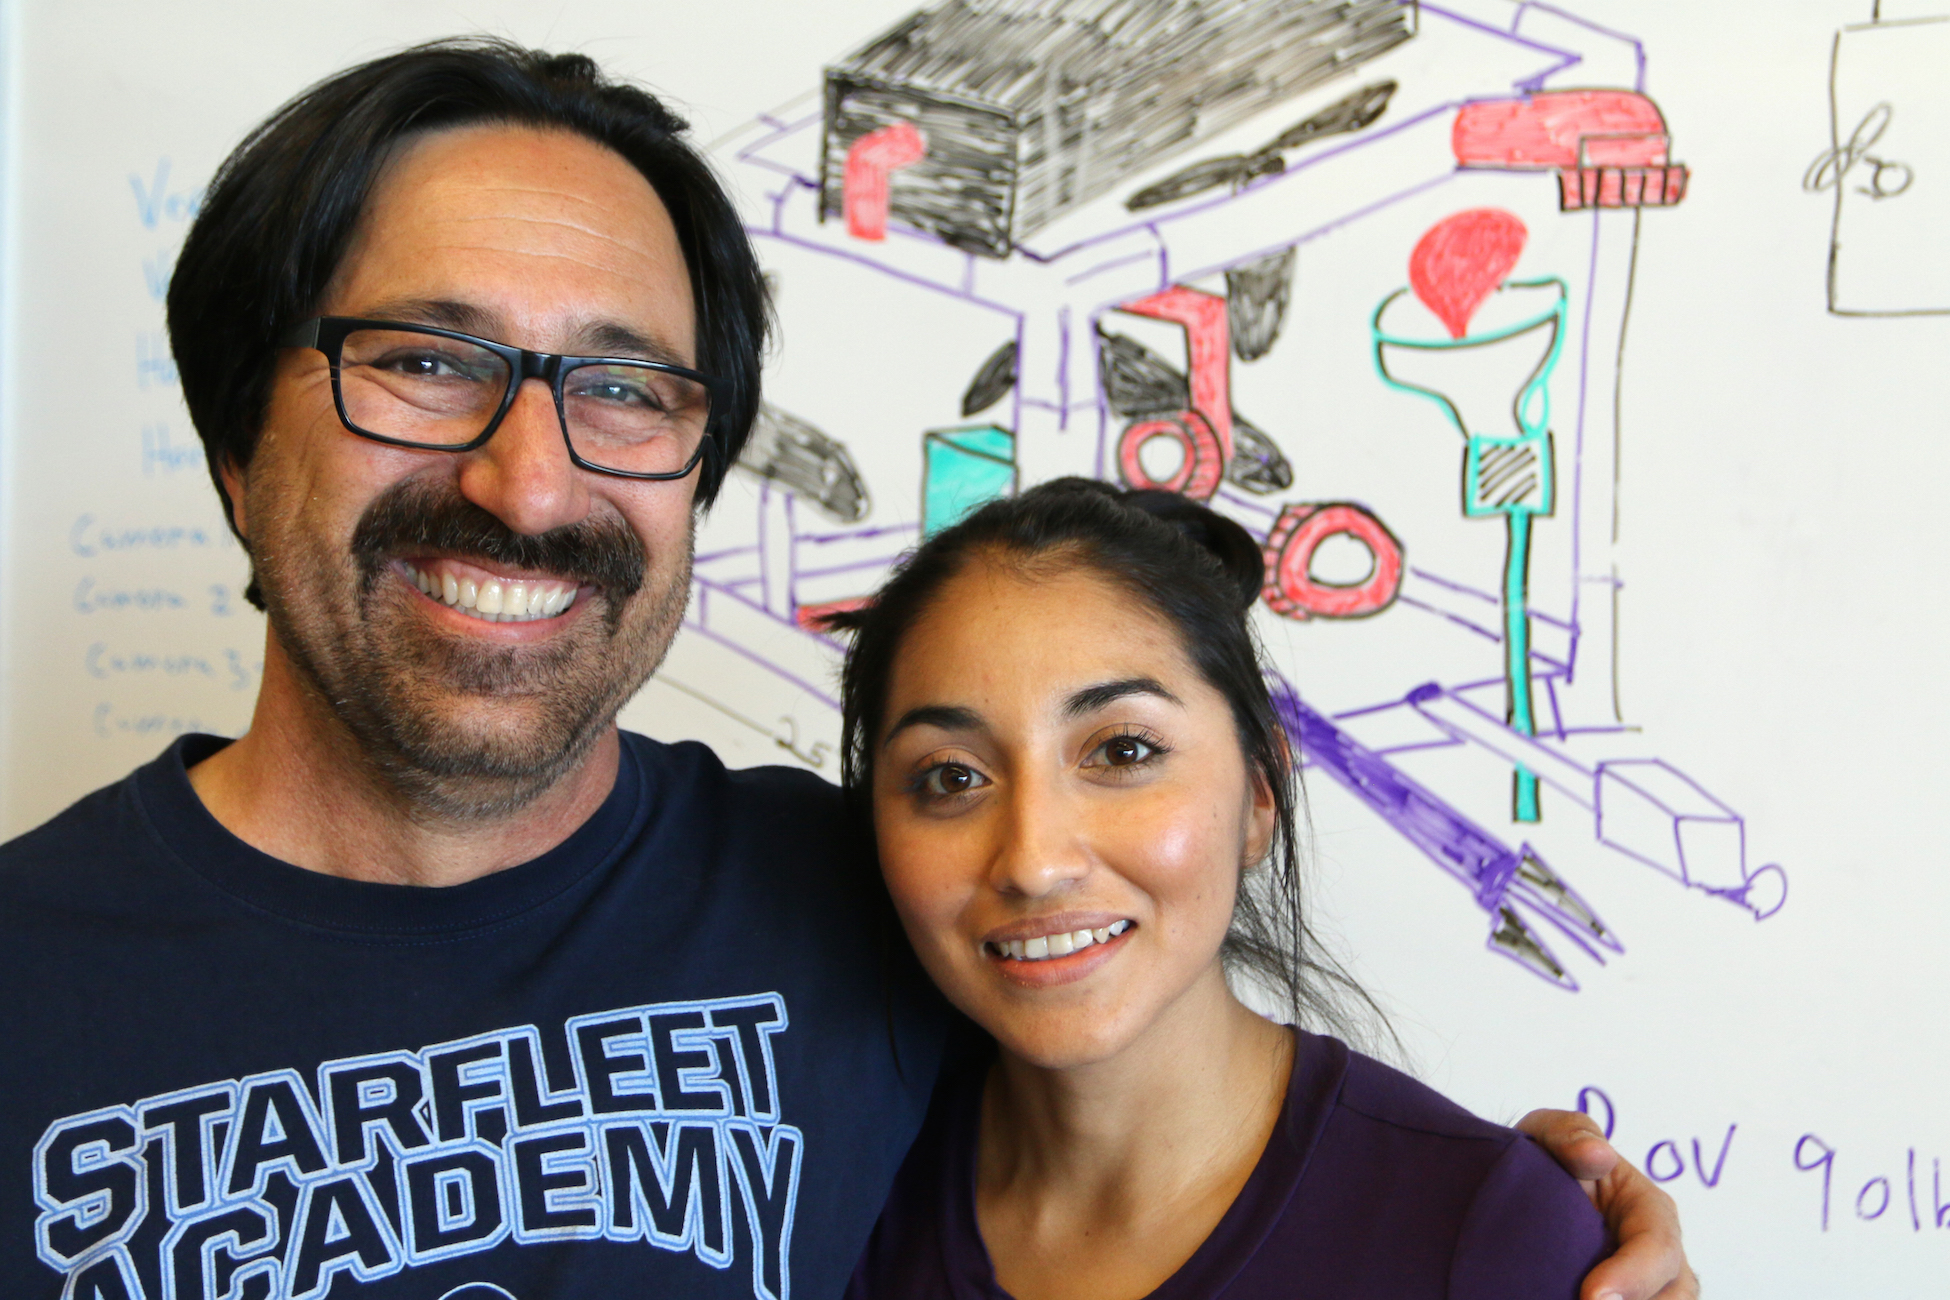 Fredi And Angelica Dream Big Engineering Our World